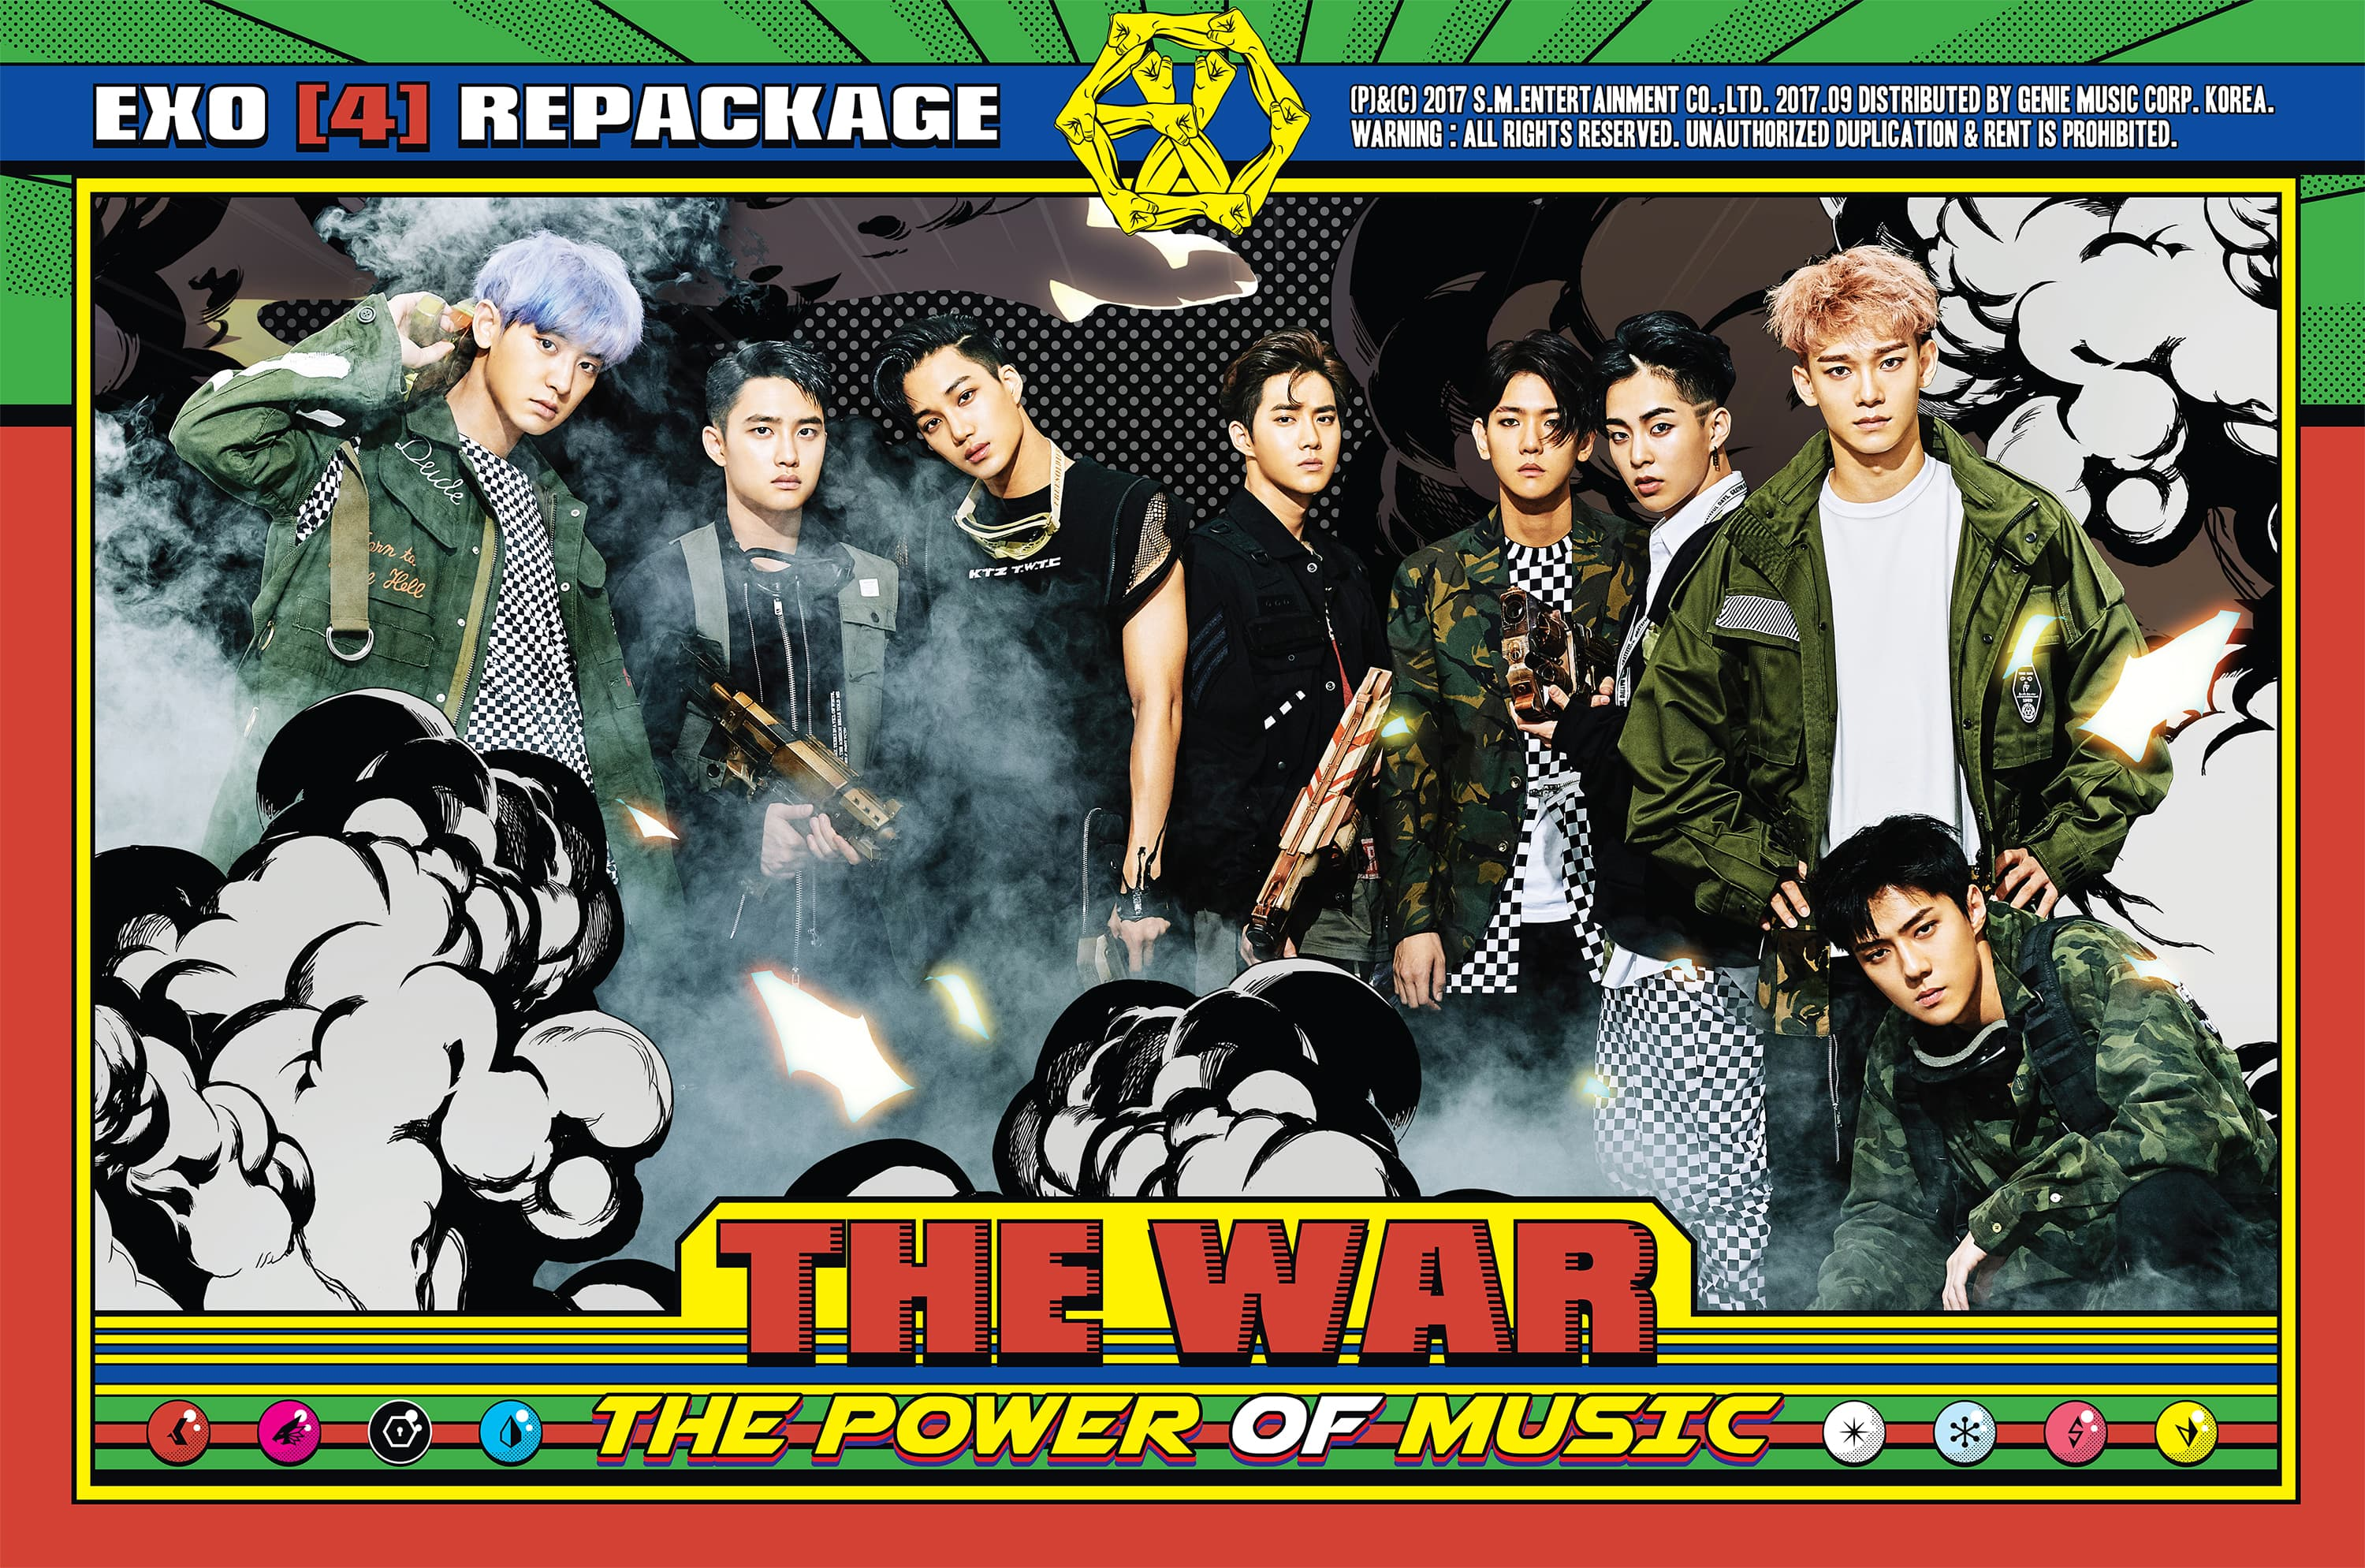 Update: EXO Looks Powerful In Final Group Teaser Ahead Of Comeback With Repackaged Album